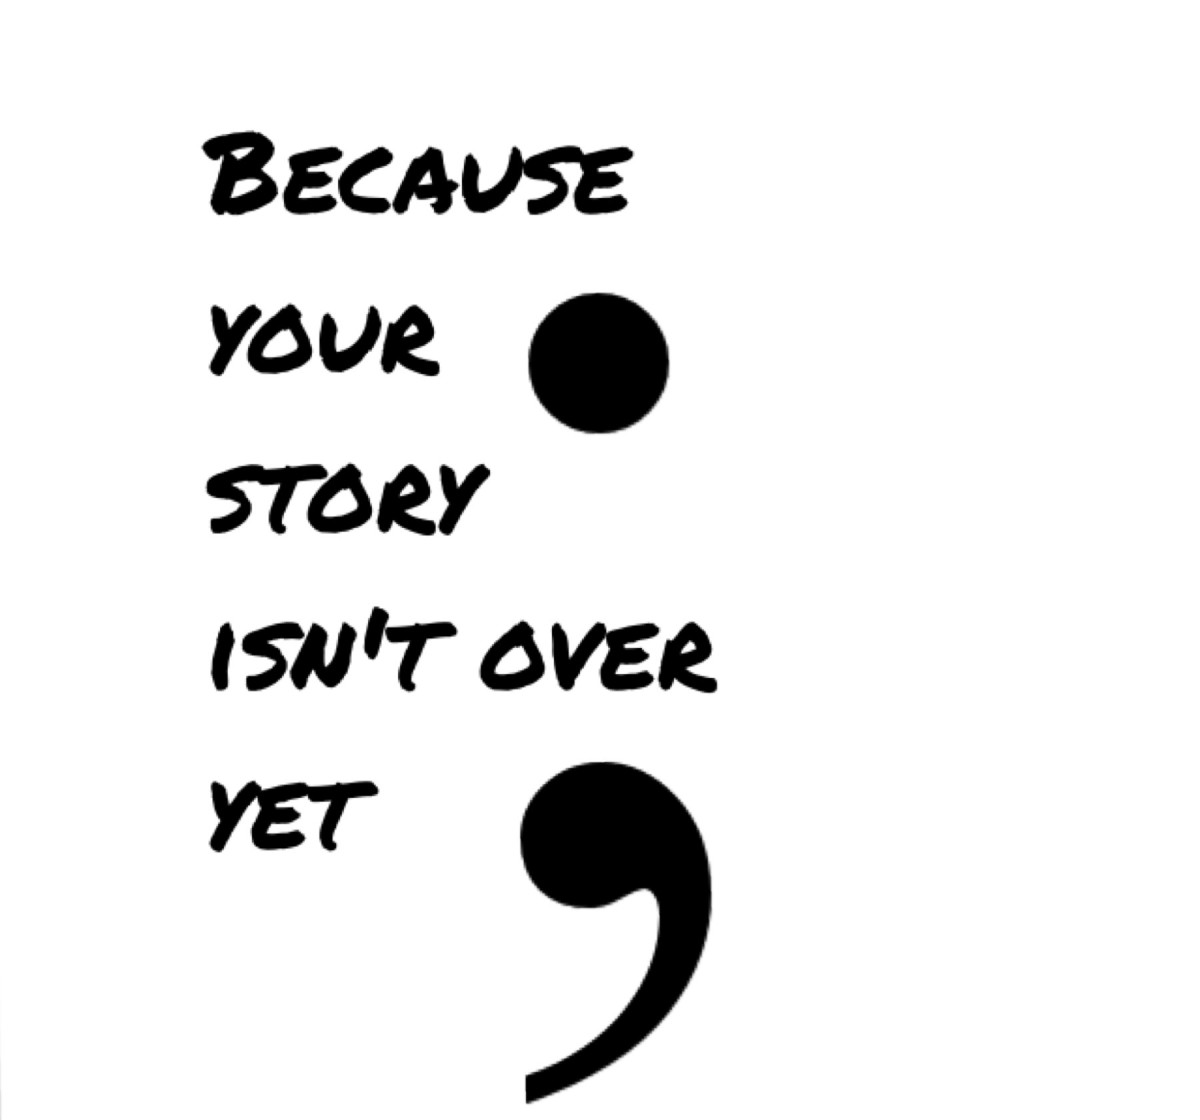 the-semicolon-project-my-thoughts-on-what-it-means-to-me